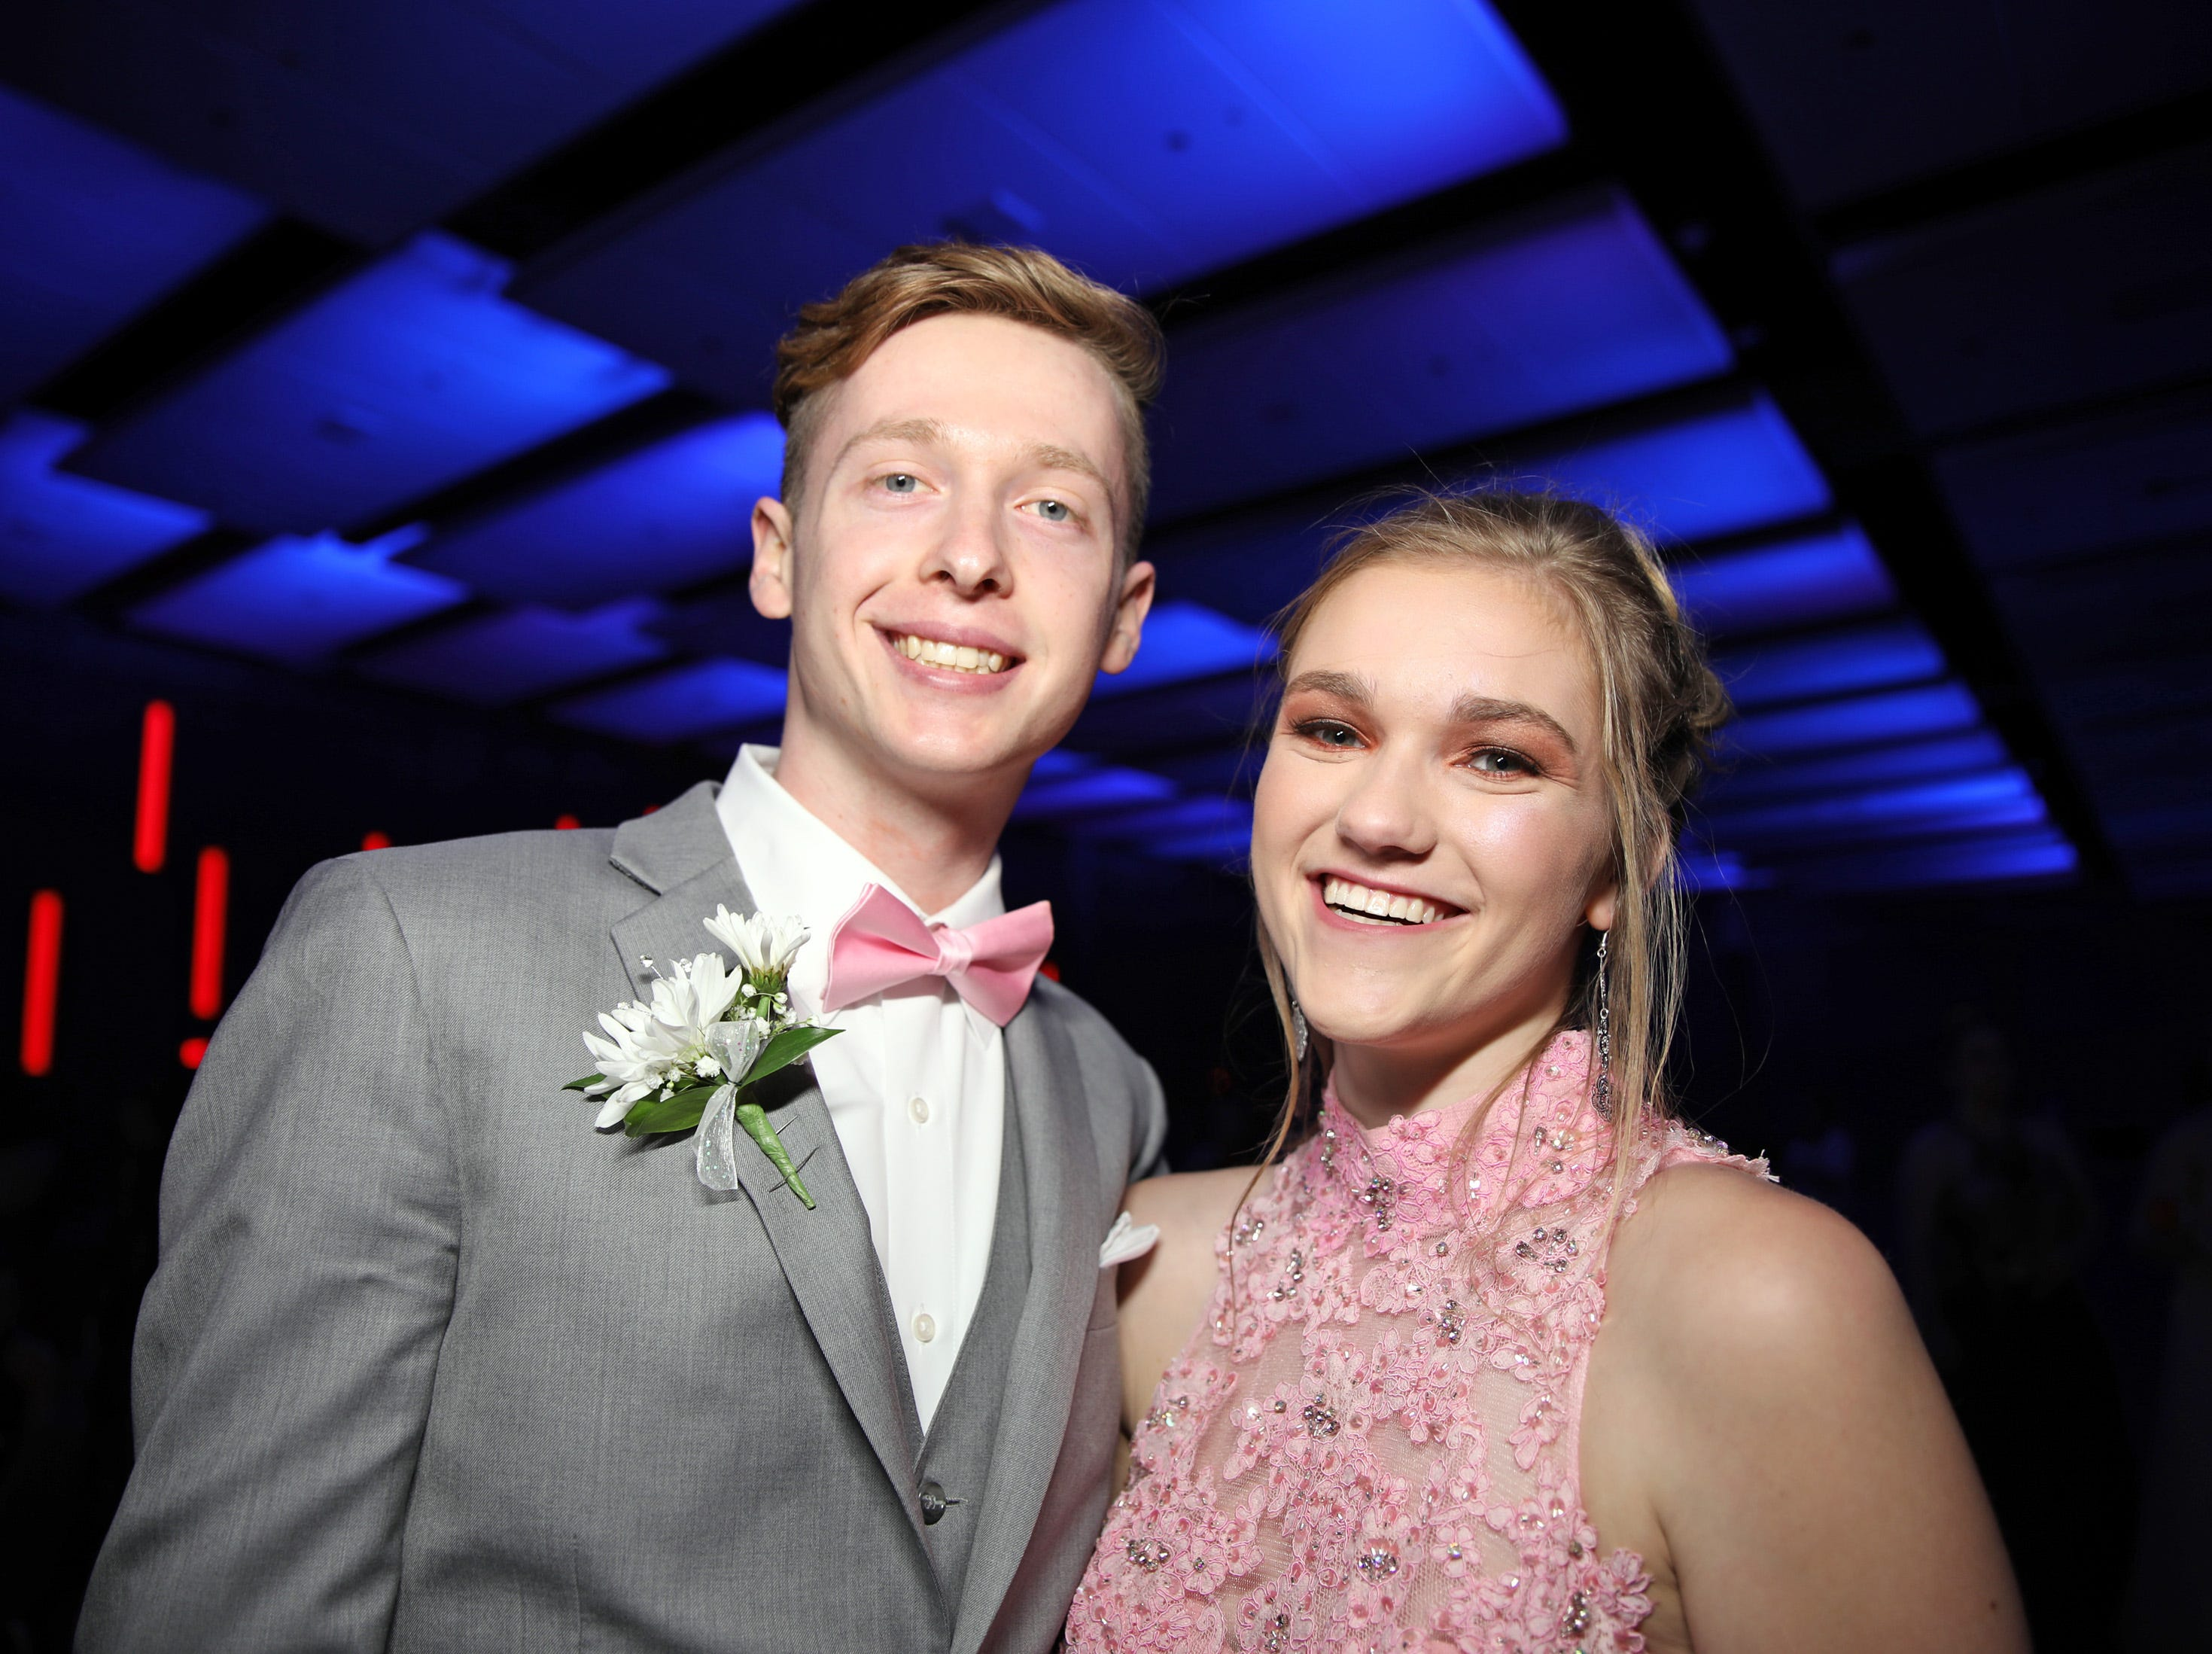 Seniors Hunter Stewart and Sydney Schafer attend the Waukee High School Prom at the Ron Pearson Center in West Des Moines on Saturday, April 6, 2019.